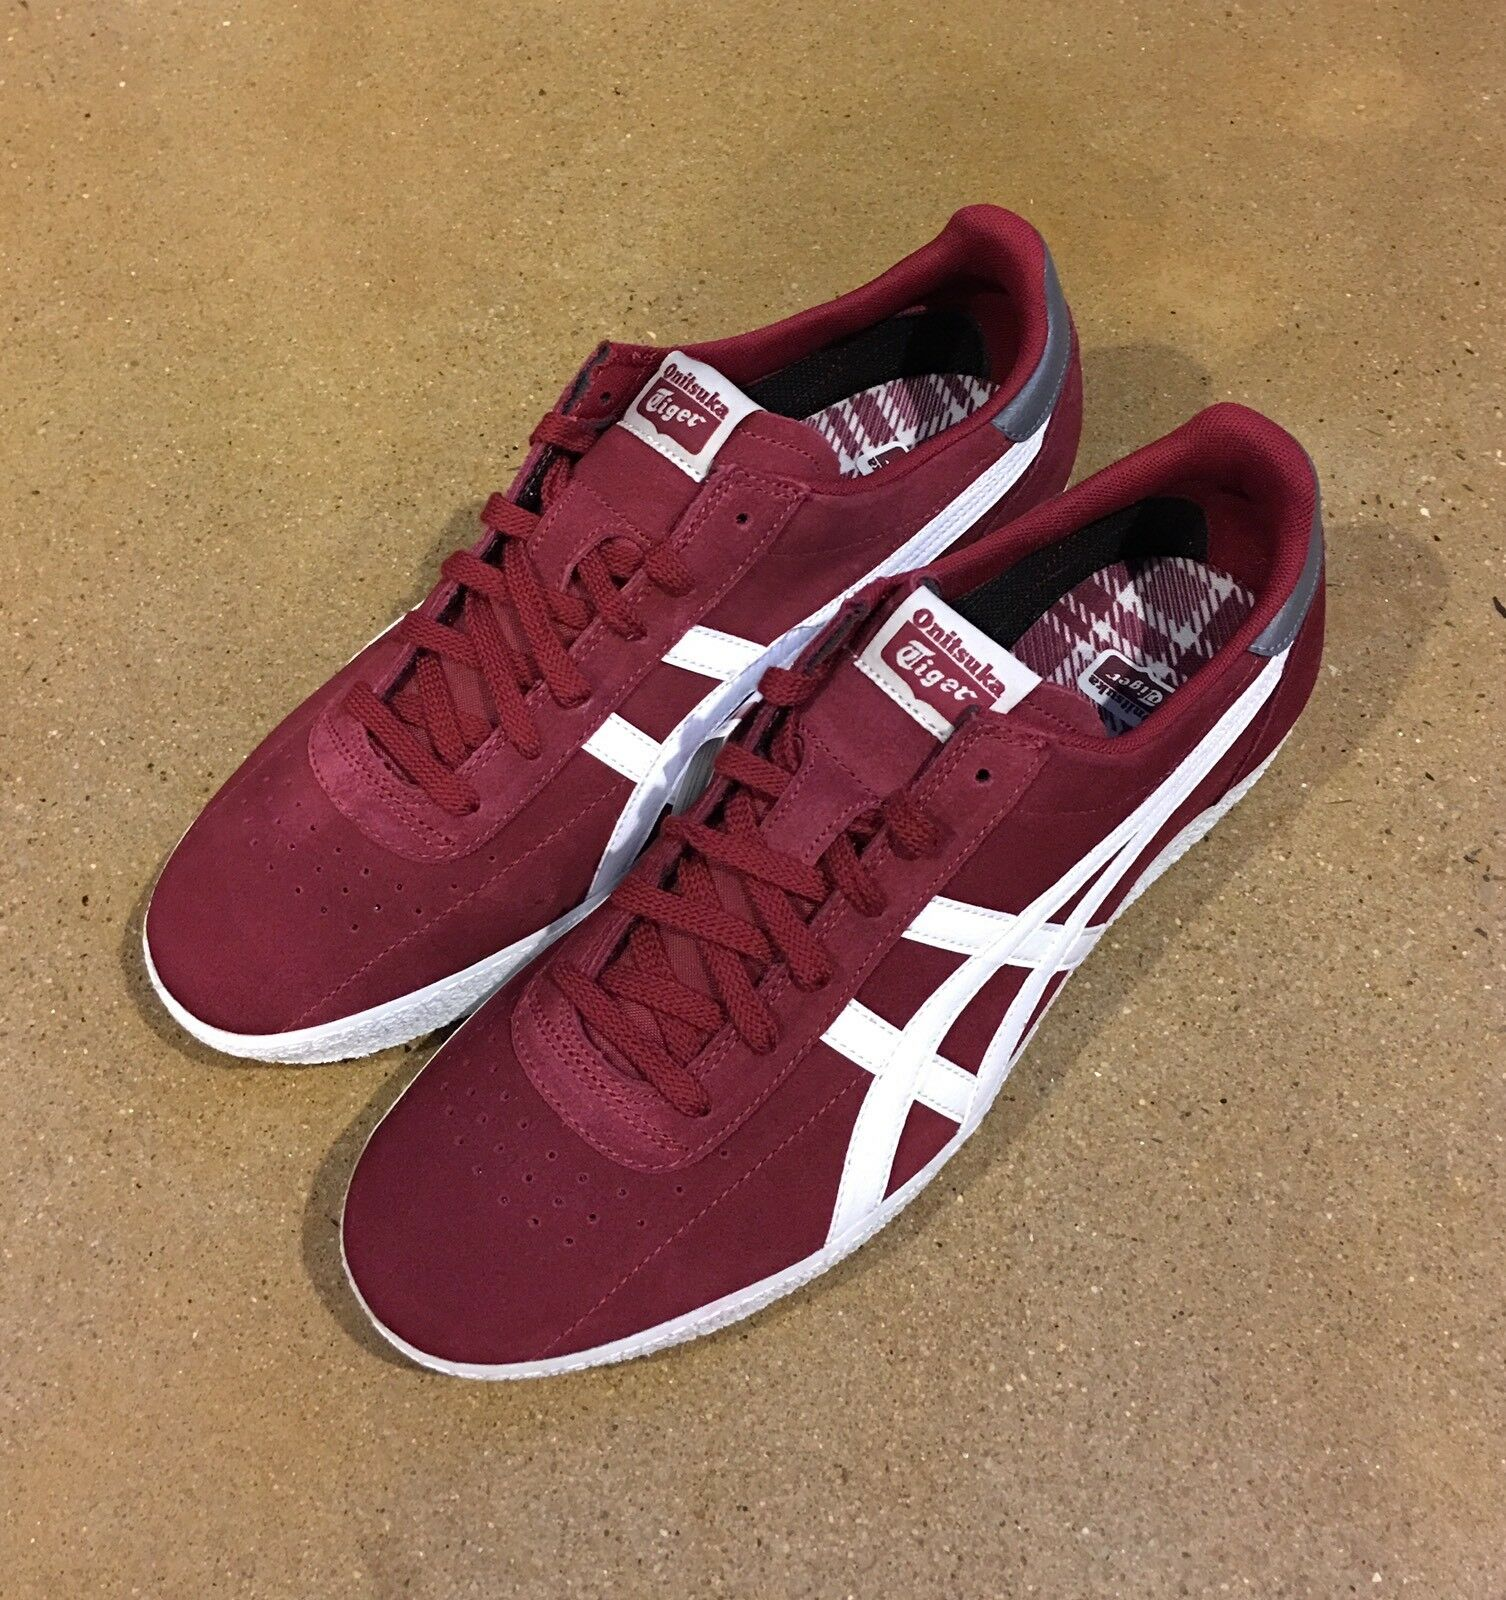 Onitsuka US Tiger by Asics Vickka Moscow Größe 12.5 US Onitsuka Burgundy WEISS Trainers Schuhes 5cafe0